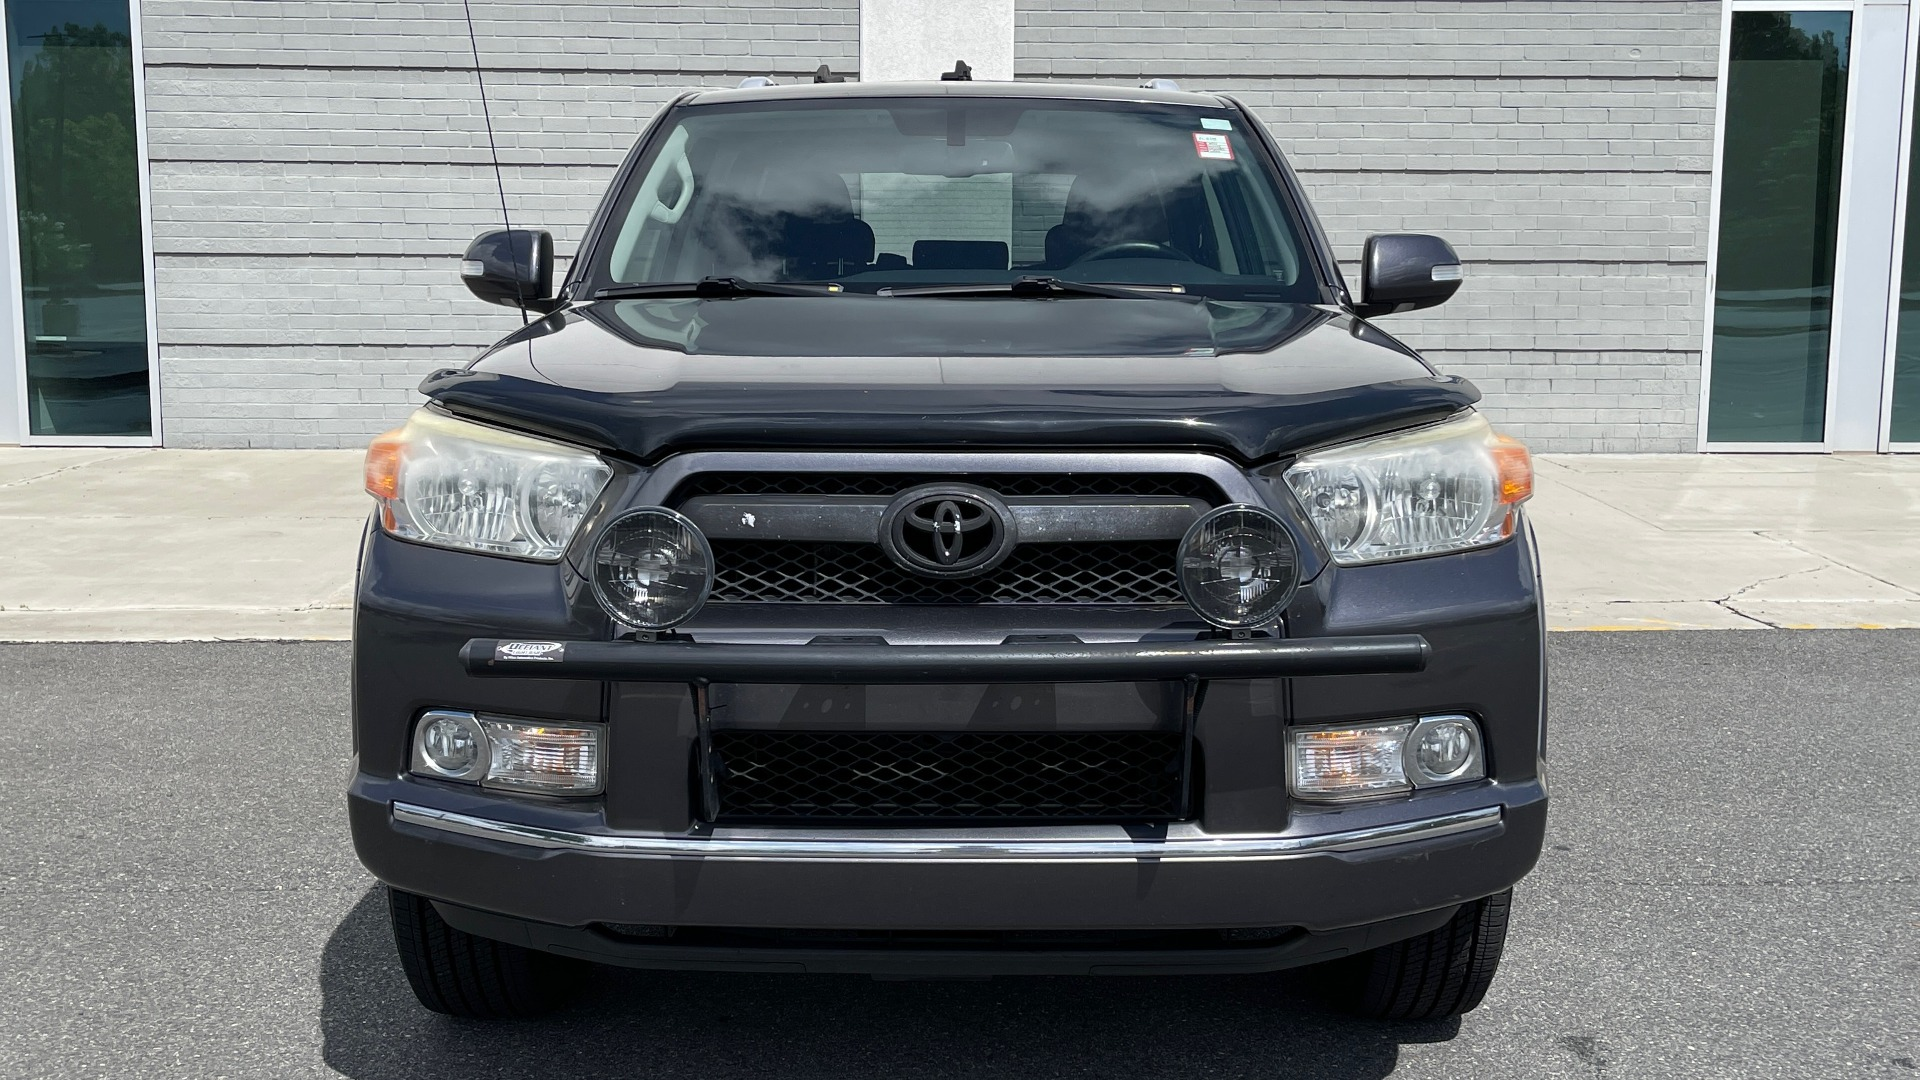 Used 2011 Toyota 4RUNNER SR5 4X4 V6 / 5-SPD AUTO / SUNROOF / POWER FRONT SEATS for sale $19,999 at Formula Imports in Charlotte NC 28227 7